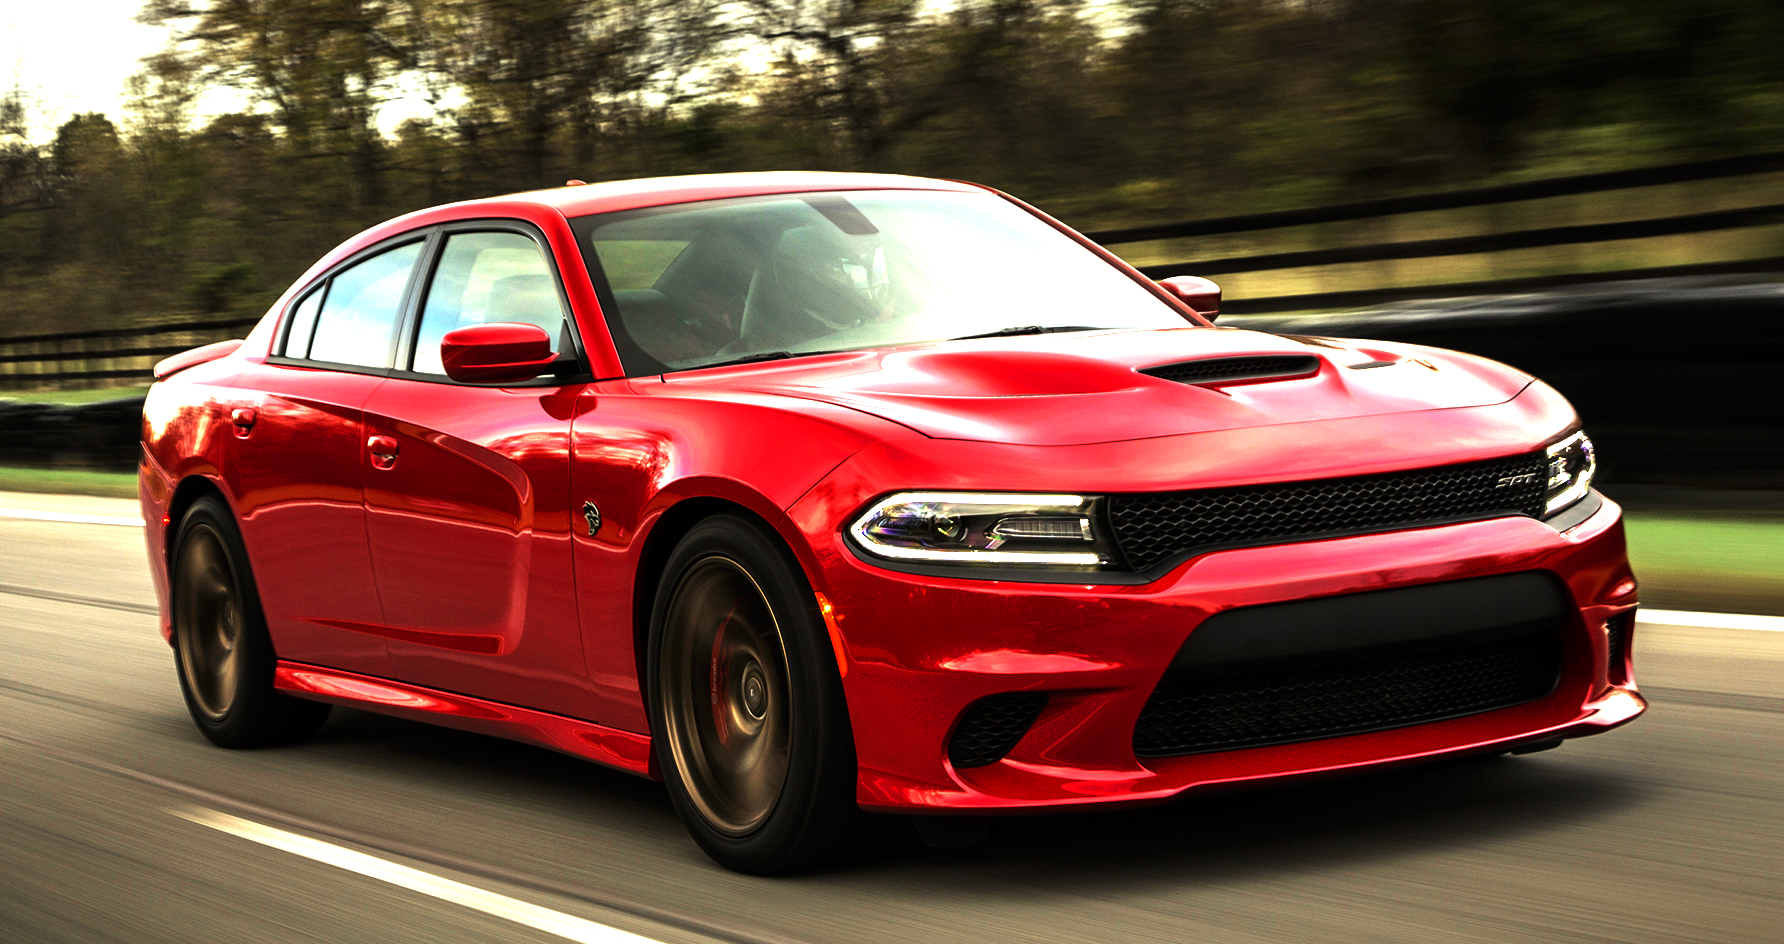 2016 Dodge Charger #9